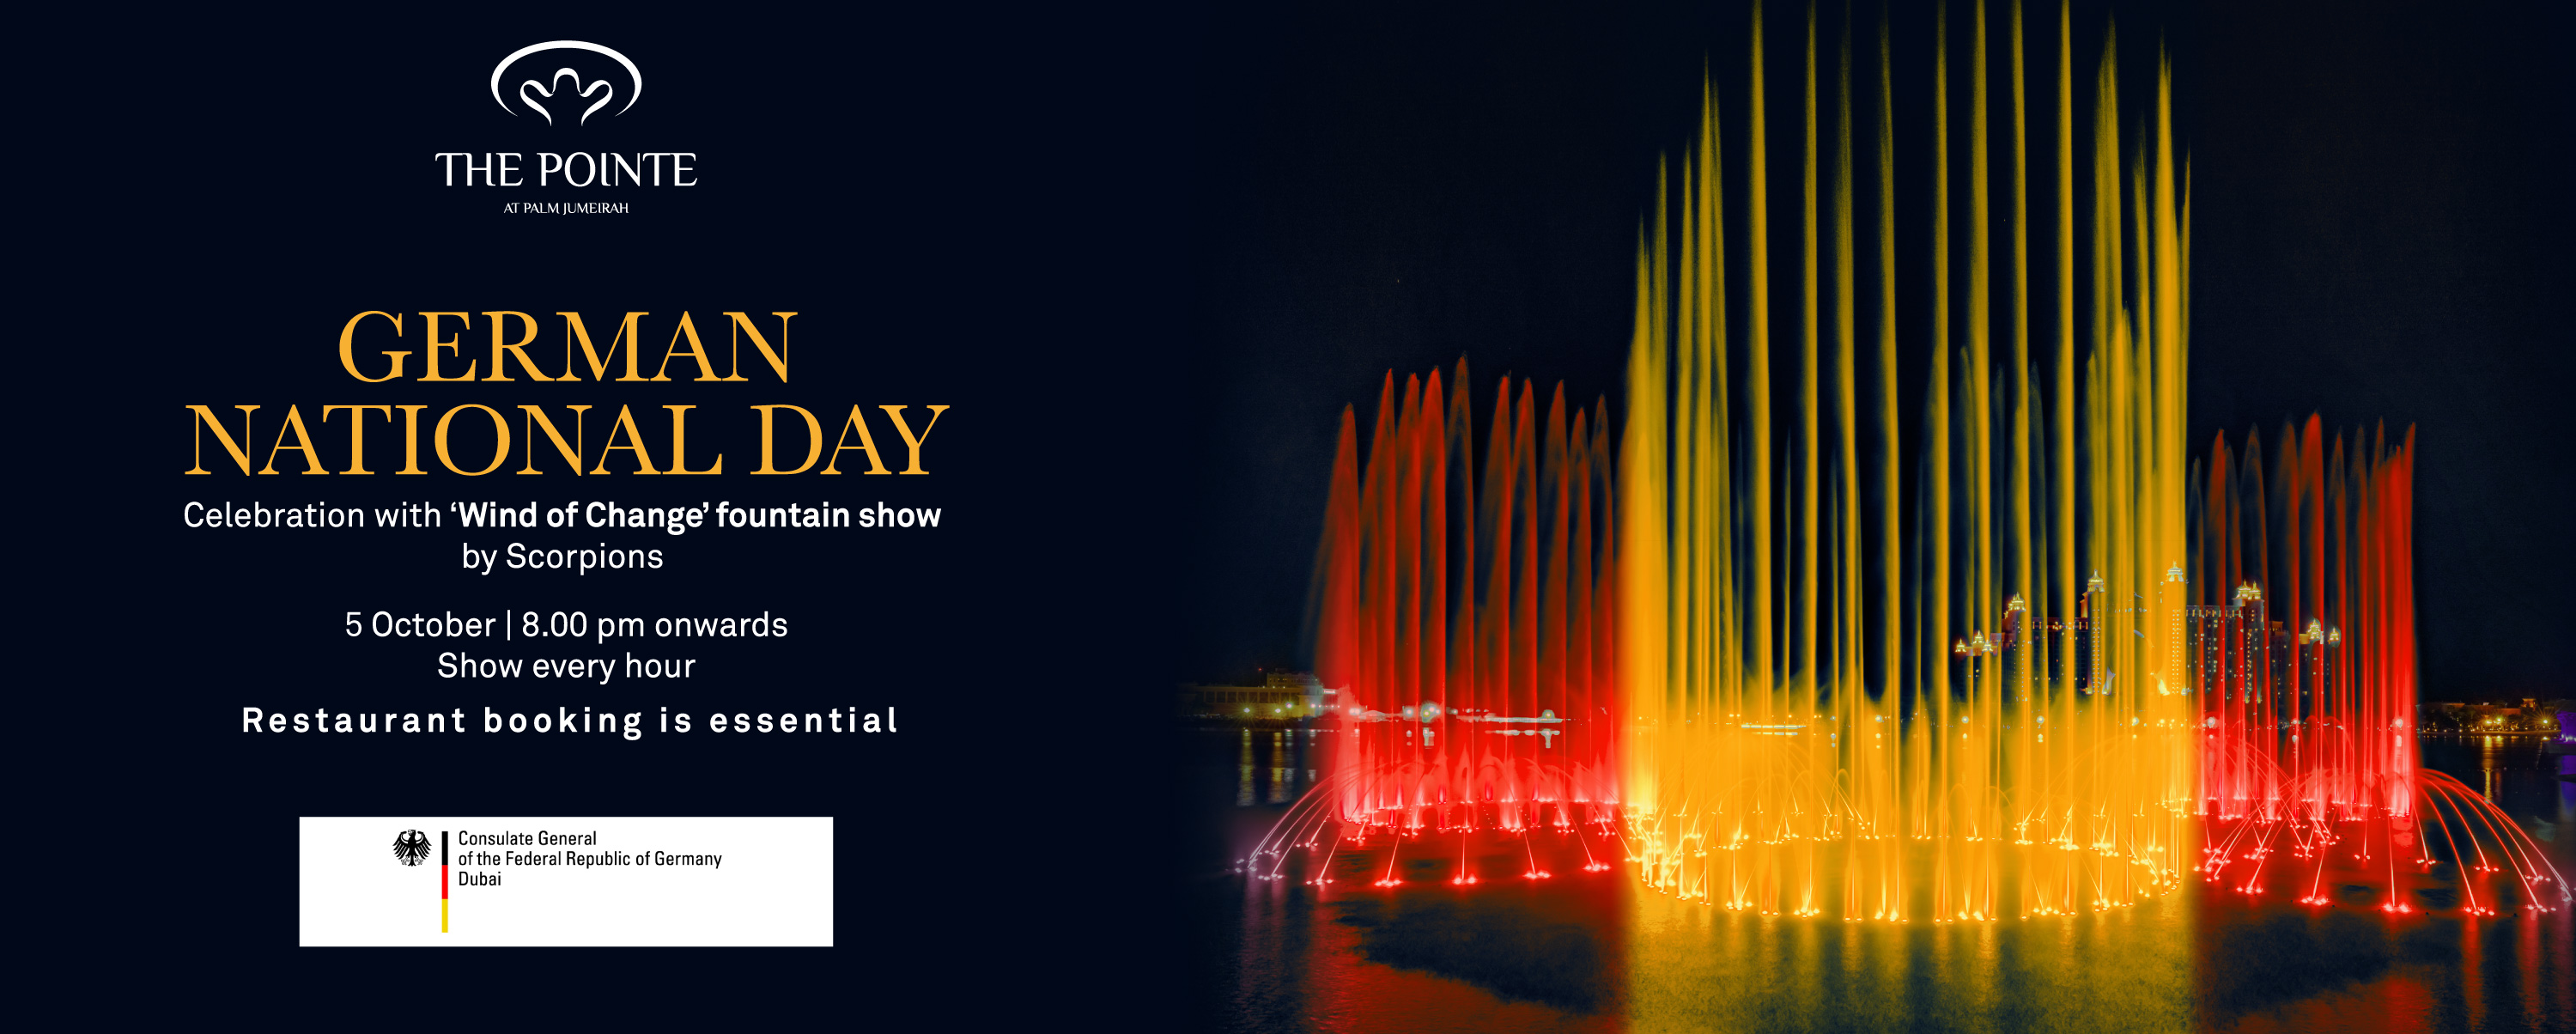 German national Day offer